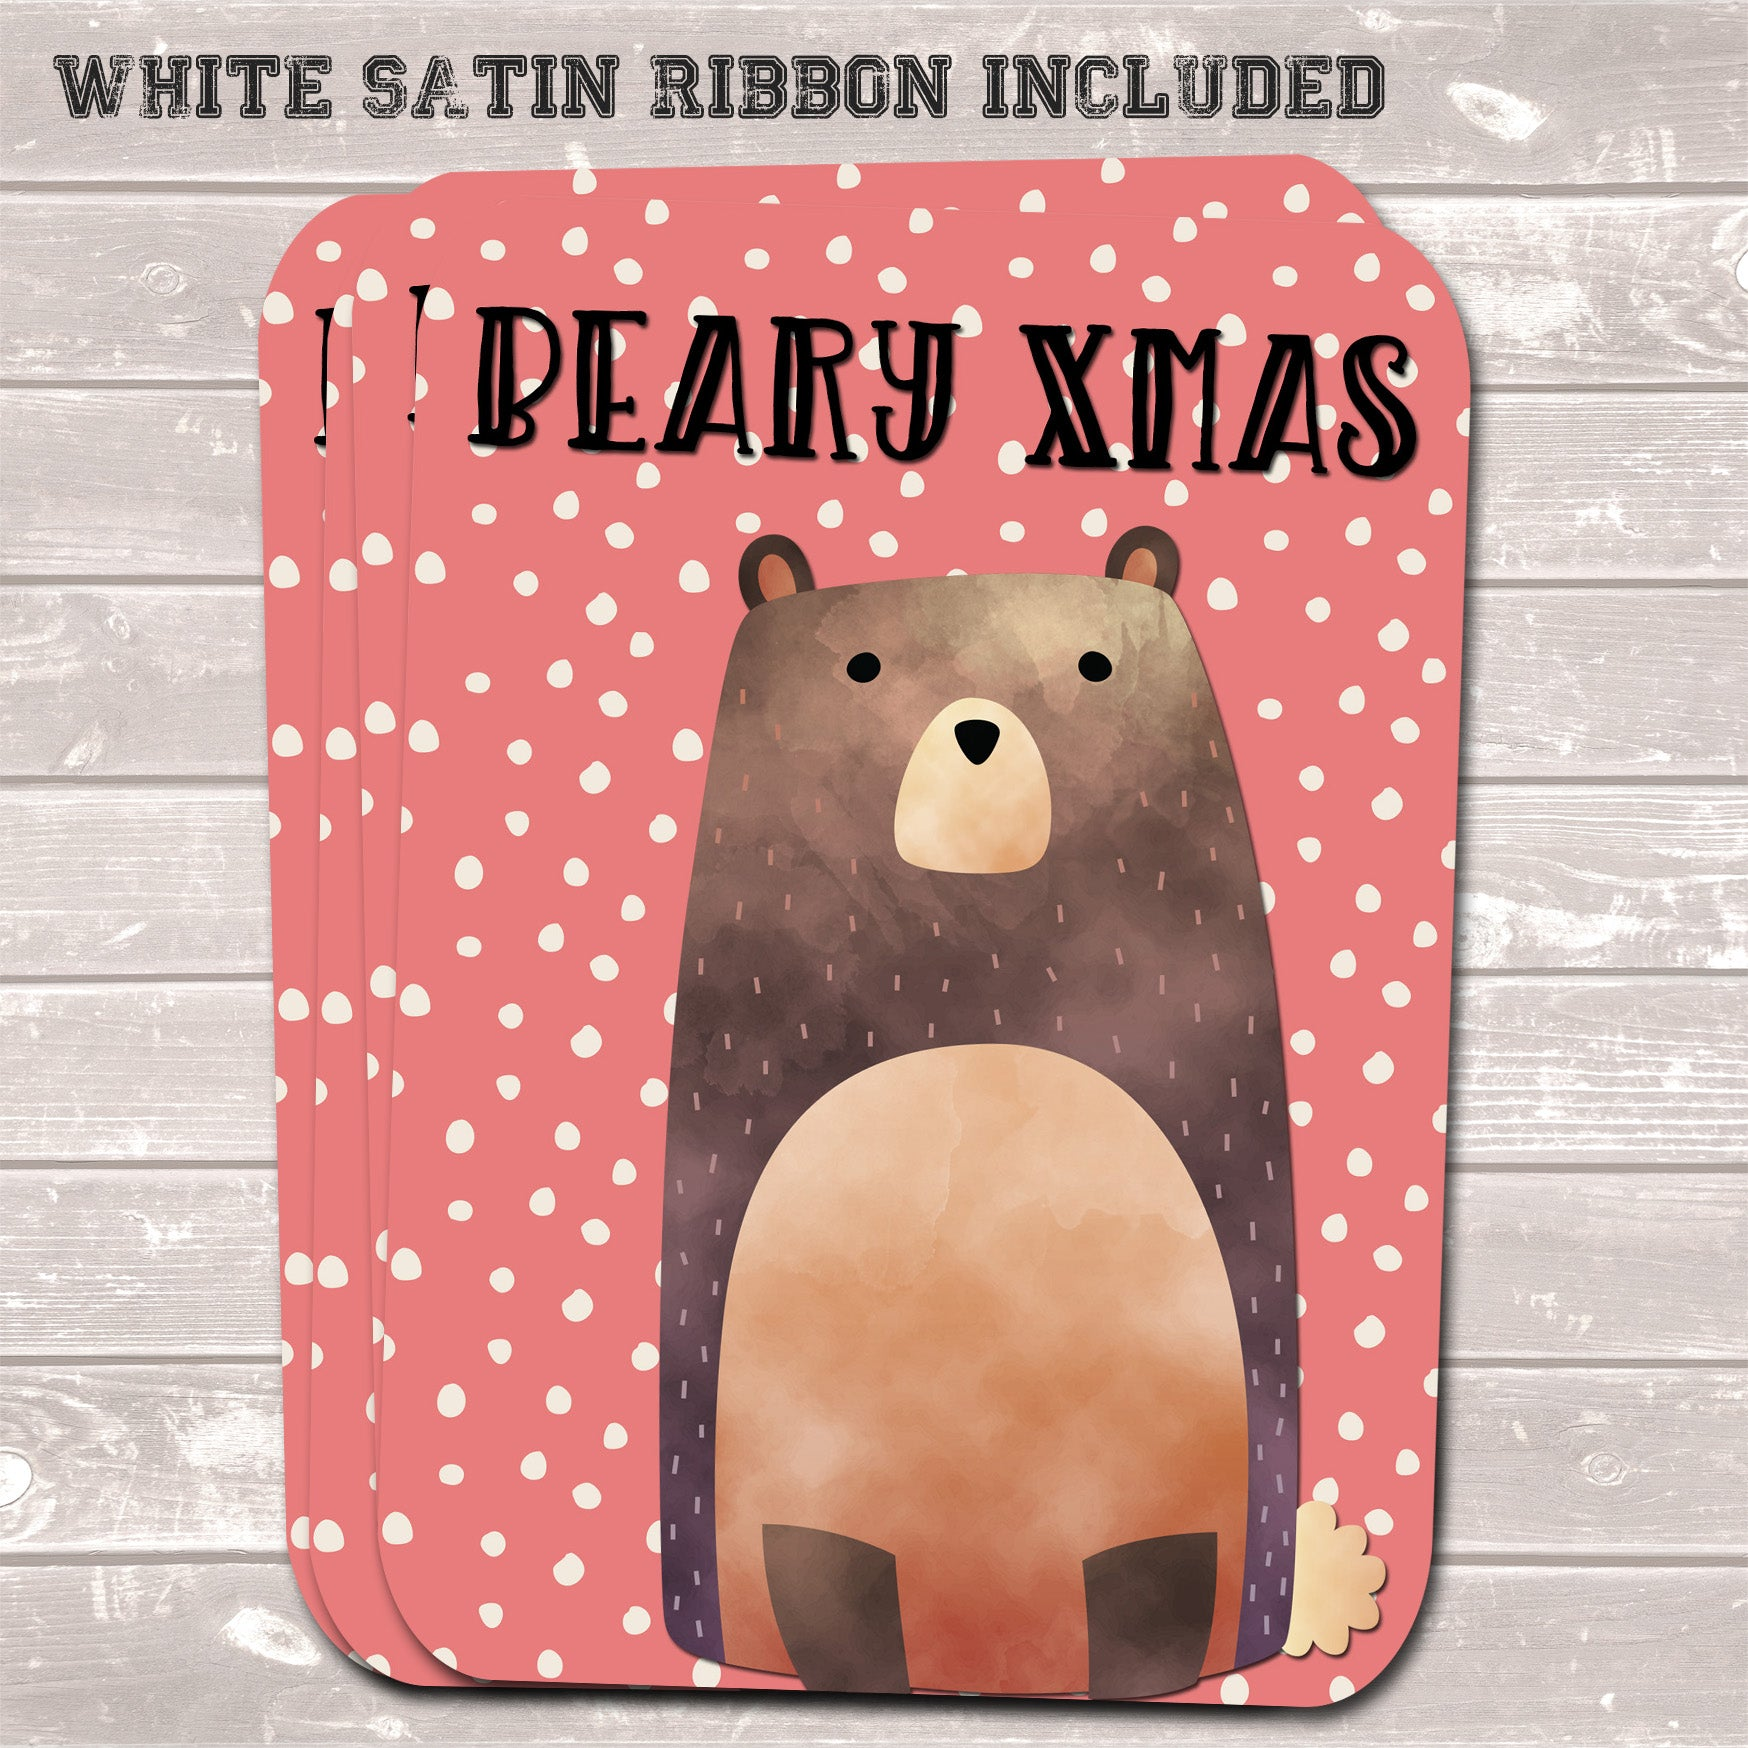 Christmas Gift Tags, Beary Xmas Coral Present Accessories (Pack of 8)